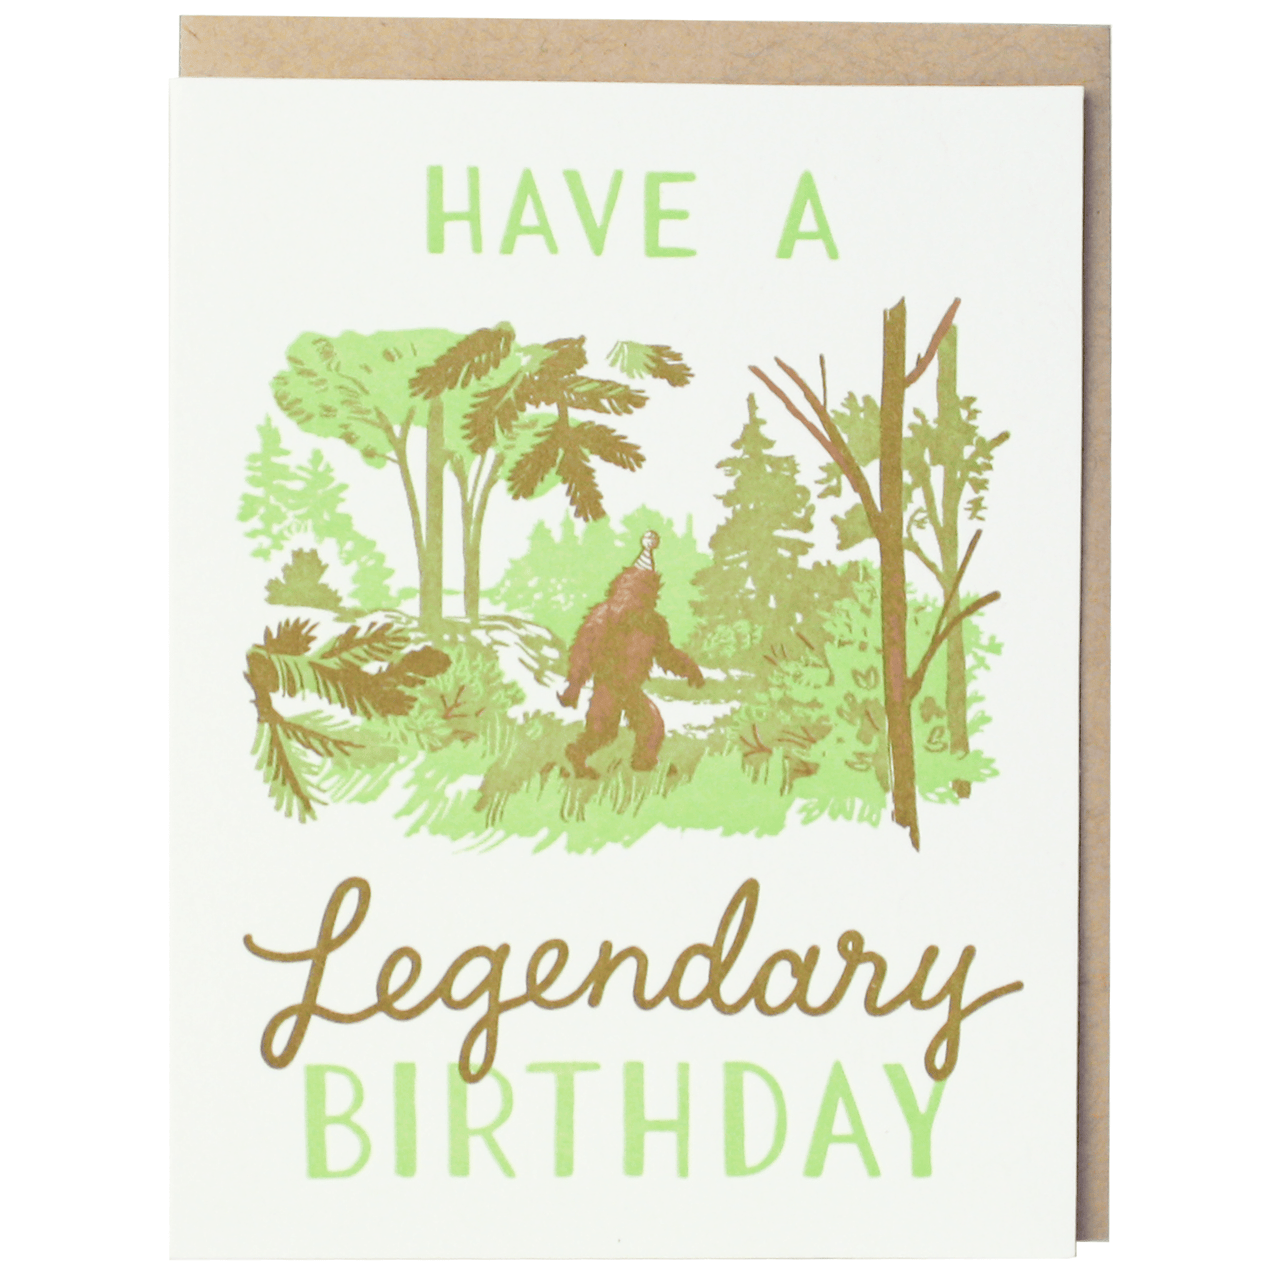 Legendary Sasquatch Birthday Card